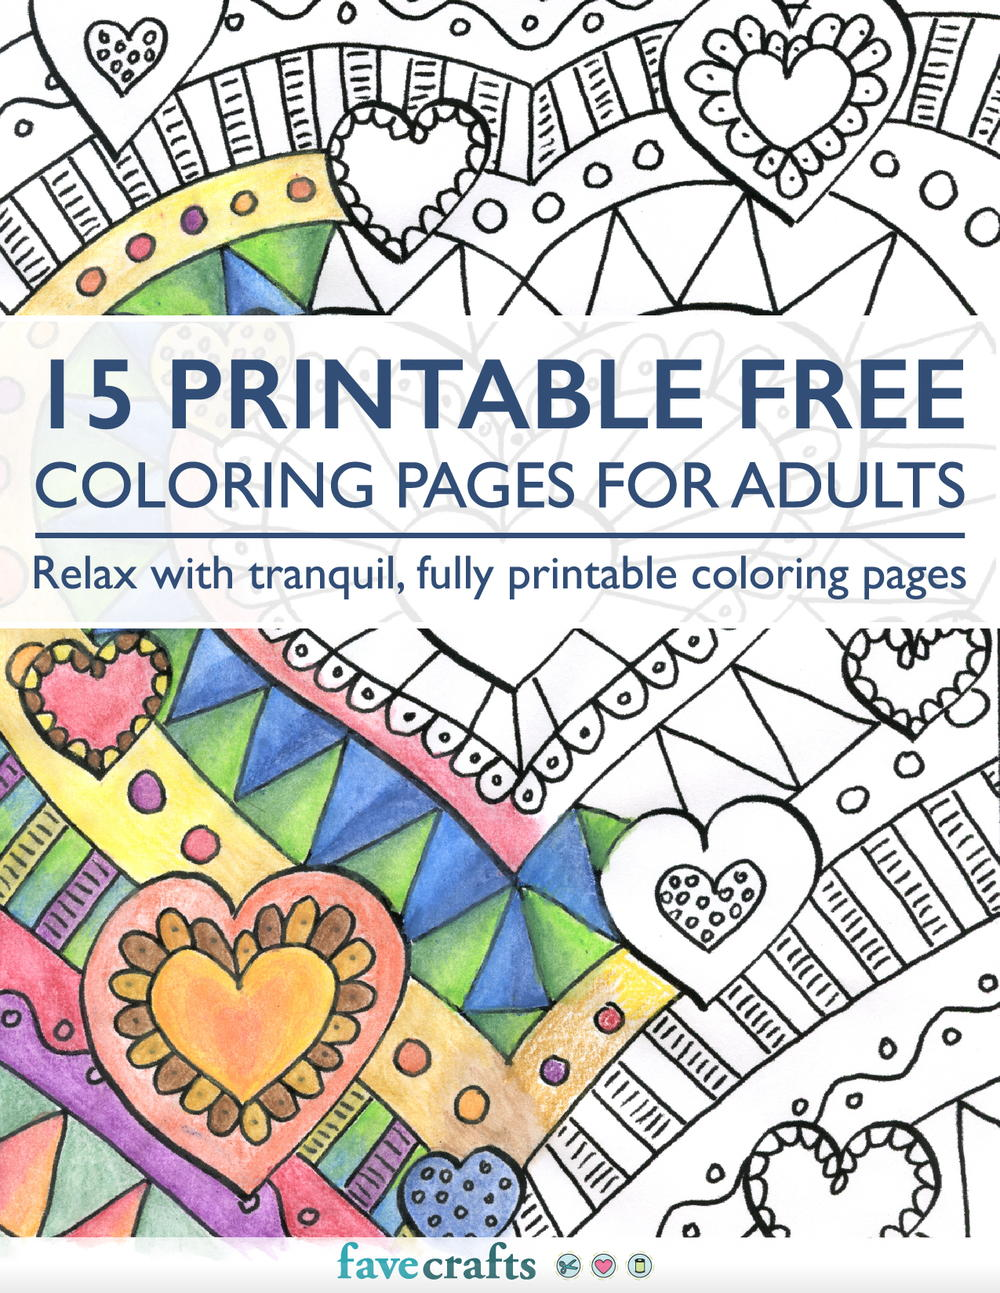 printable adults coloring pages free - photo#20